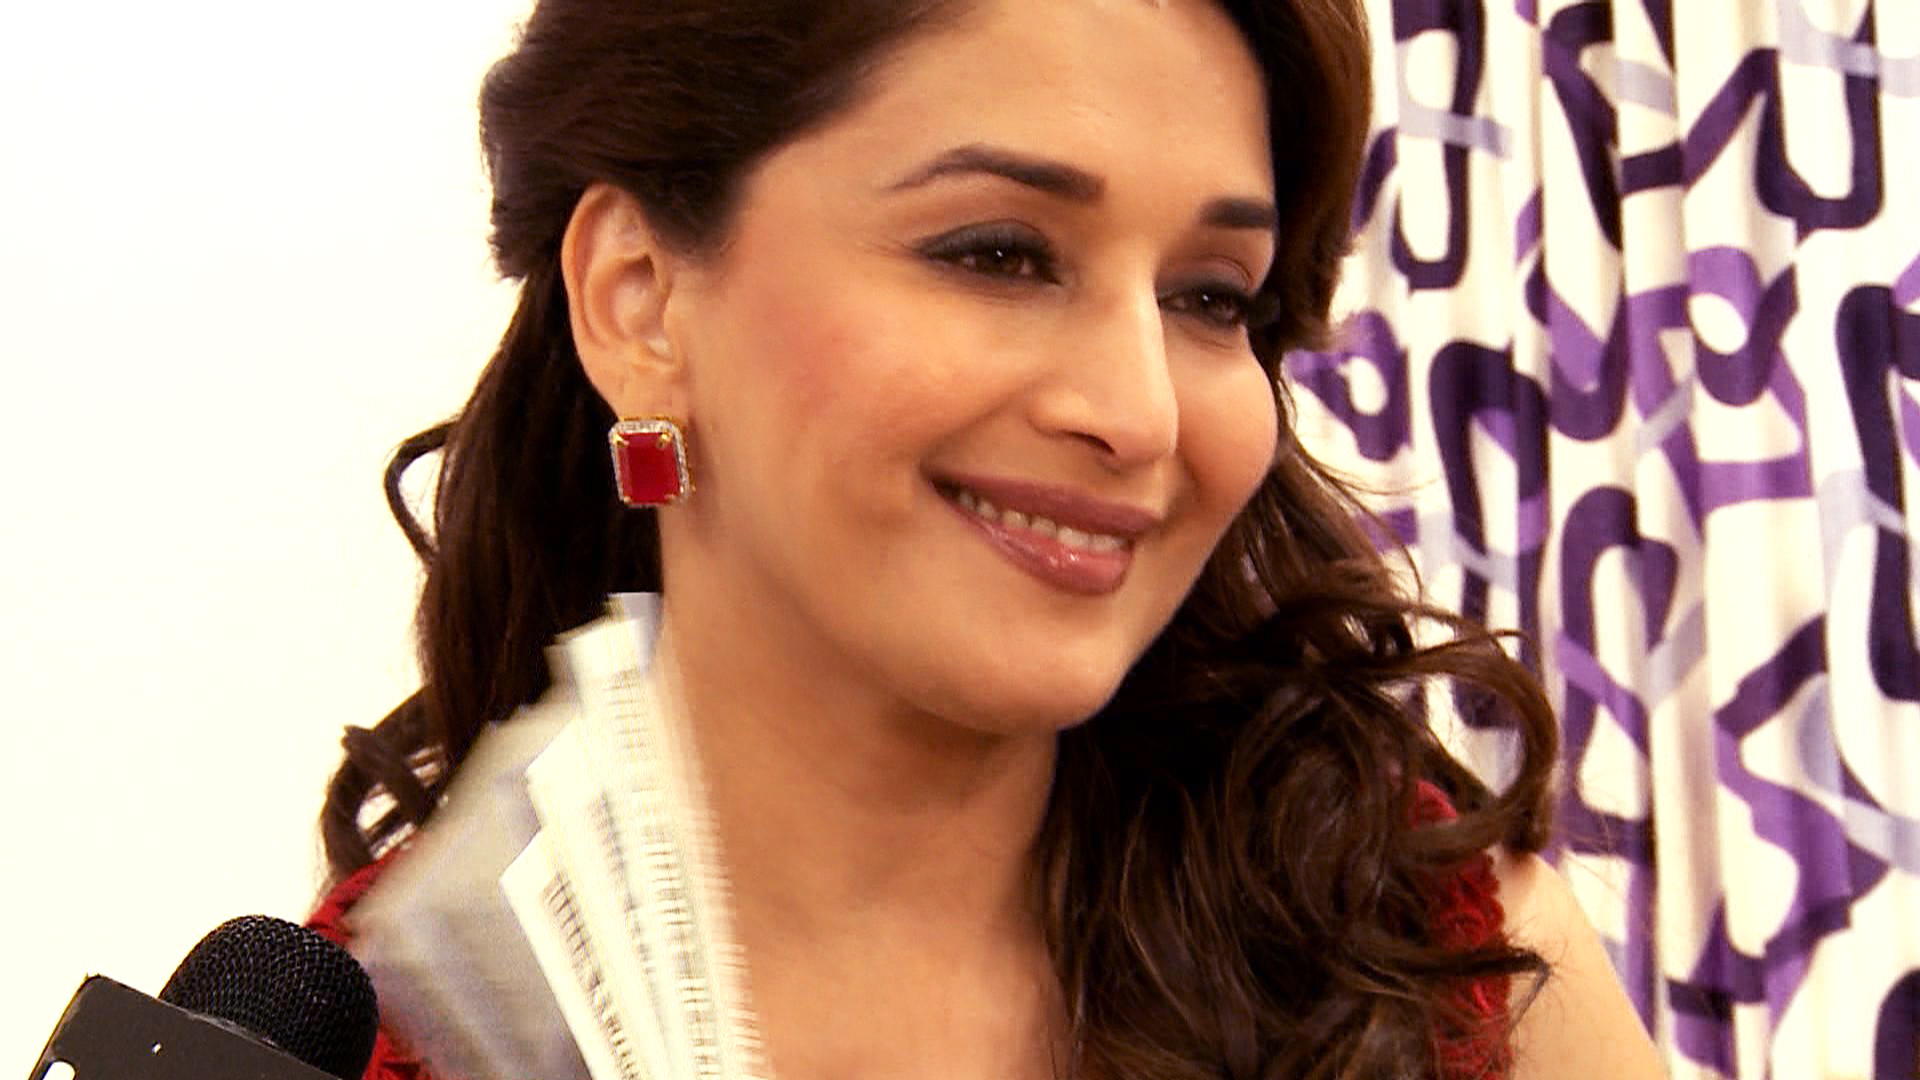 Madhuri Dixit Wallpapers HD (54 Wallpapers) - Adorable Wallpapers